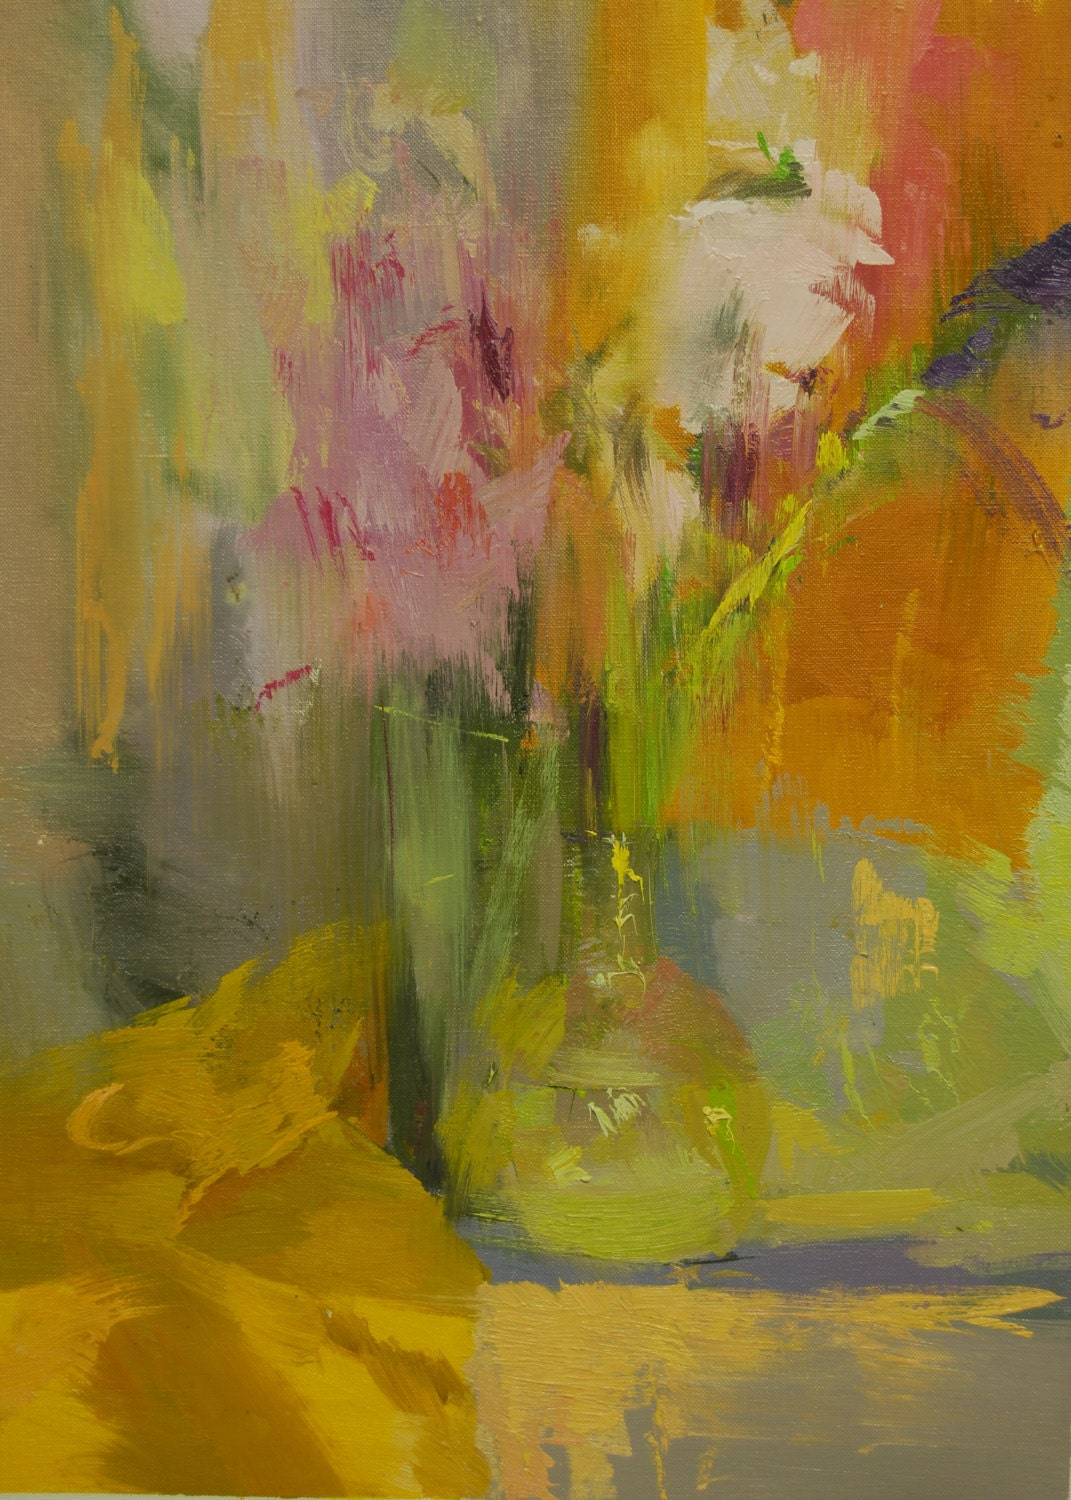 Colorful Abstract Painting Flowers Abstract Art Contemporary